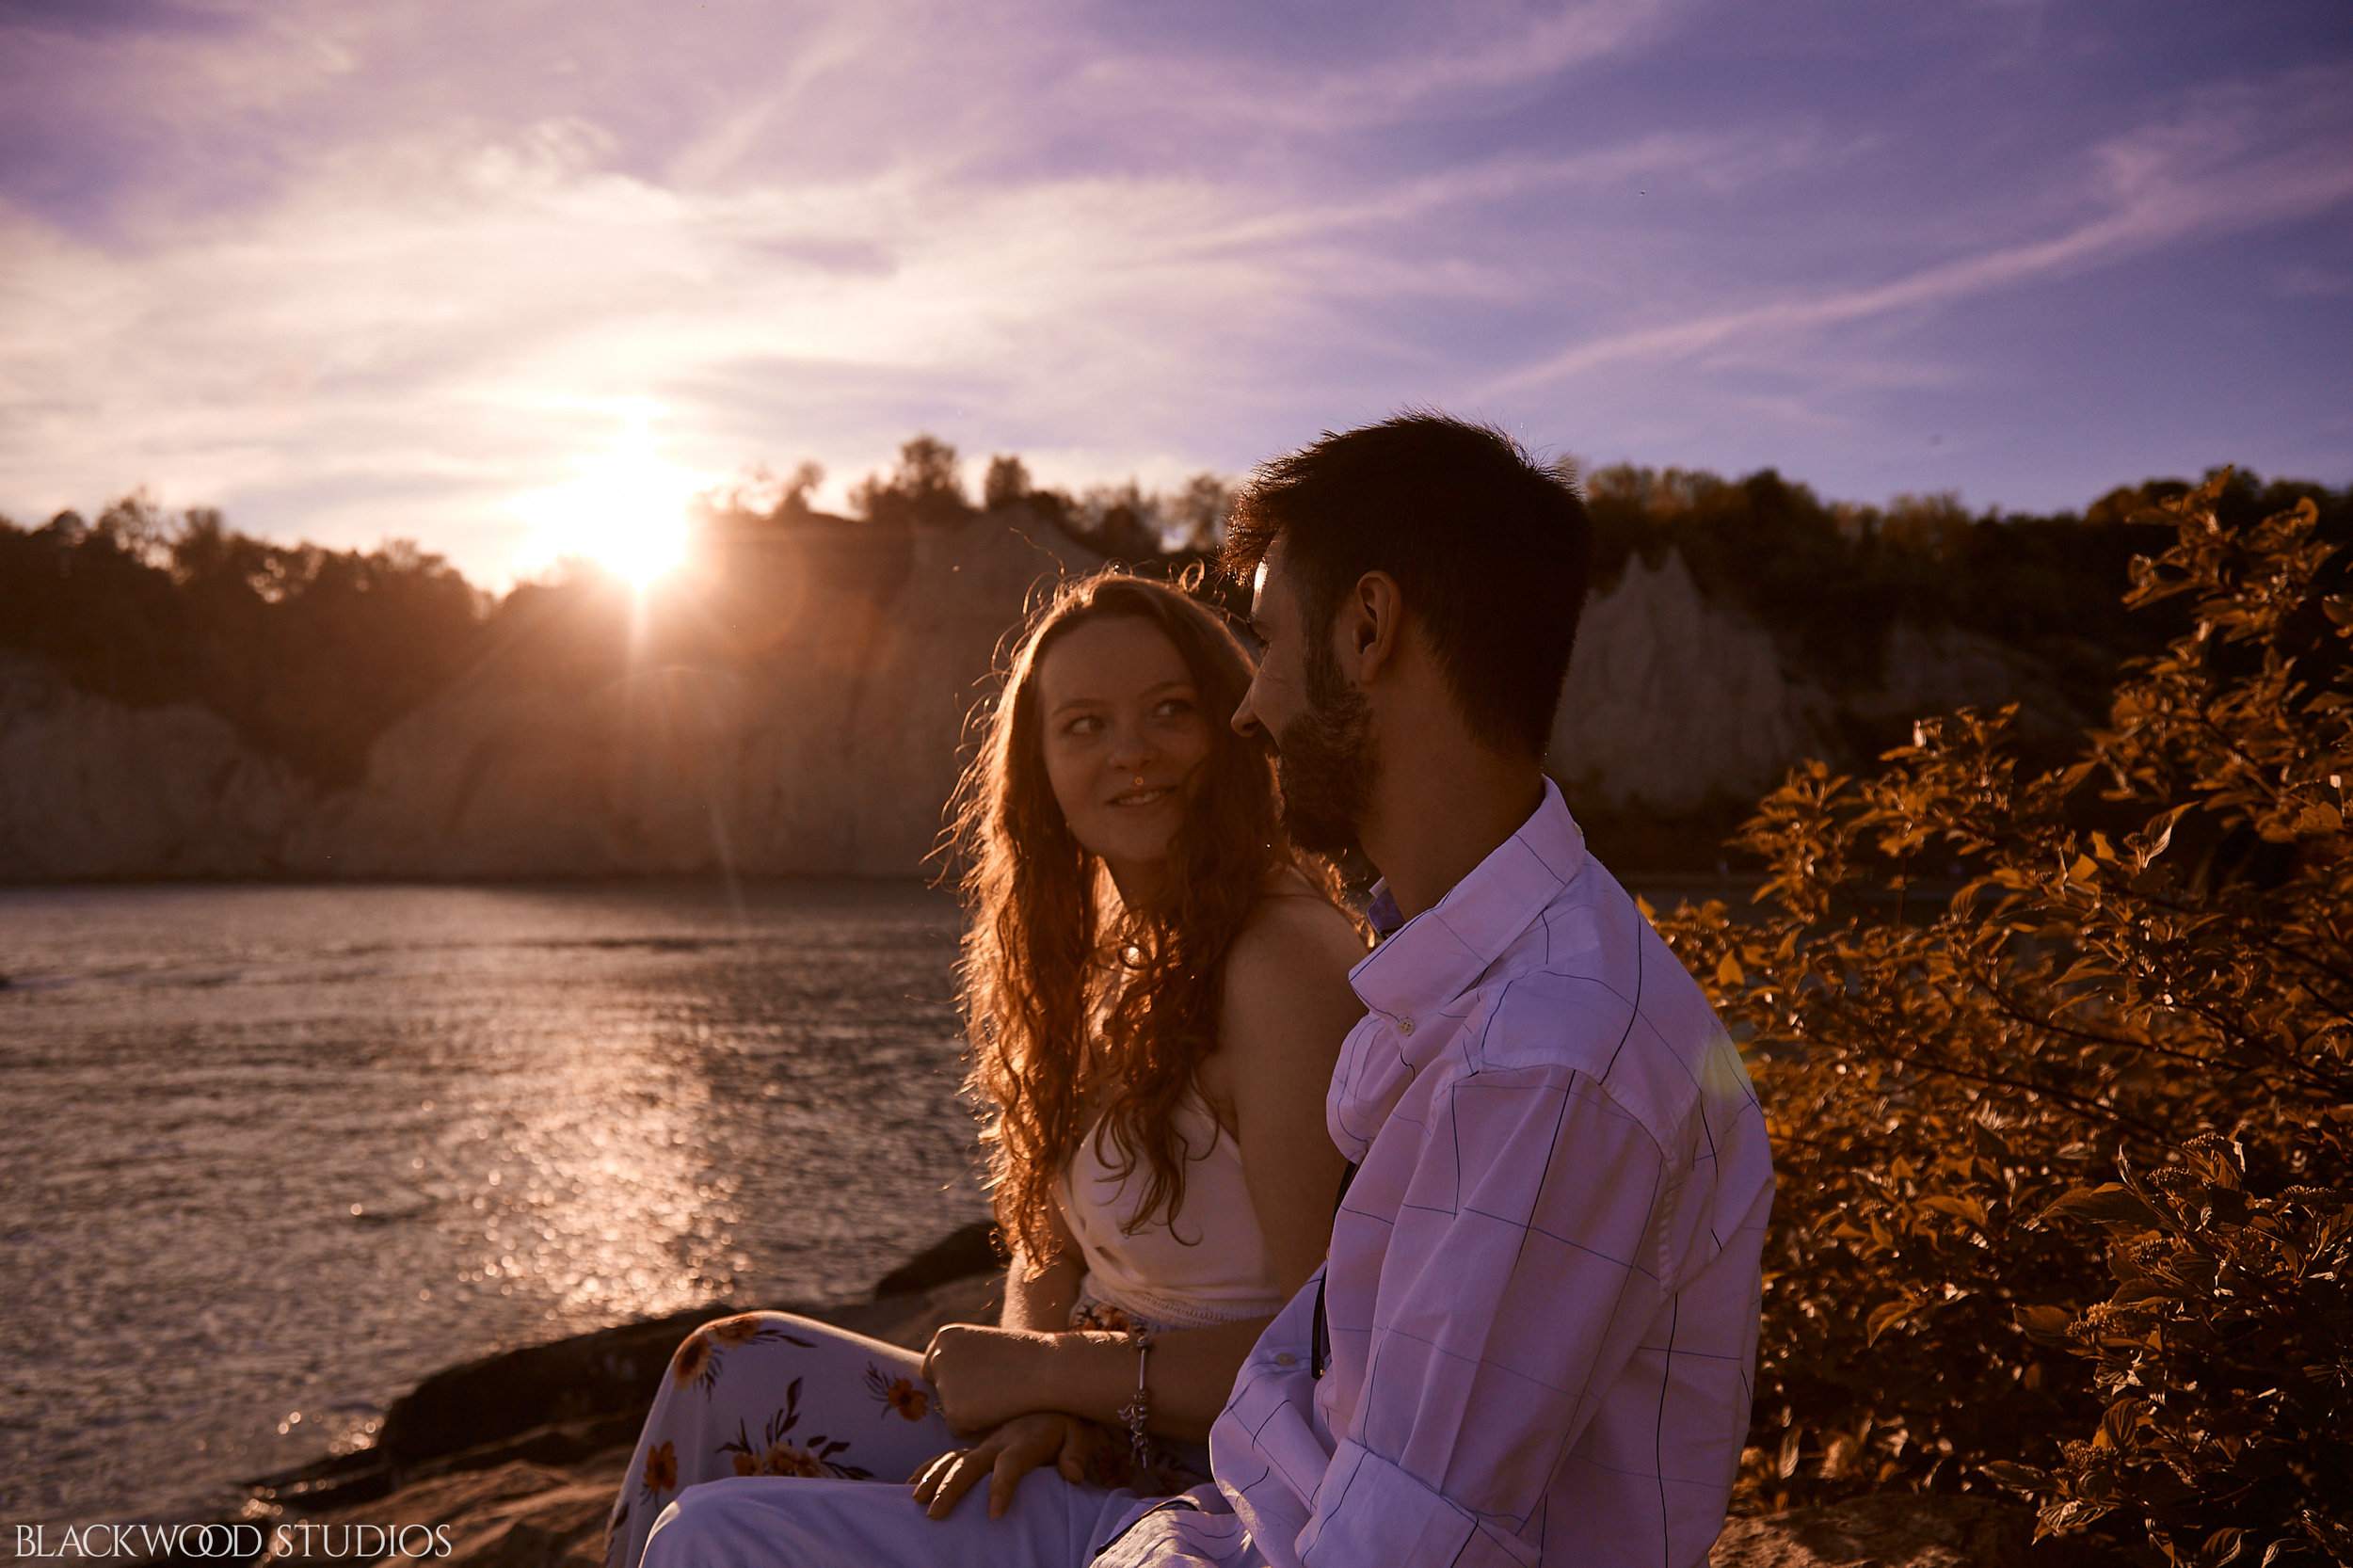 Blackwood-Studios-Photography-20190608194347-Brianna-Bryan-Engagement-Scarbourgh-Bluffs-Park-Ontario-Canada.jpg